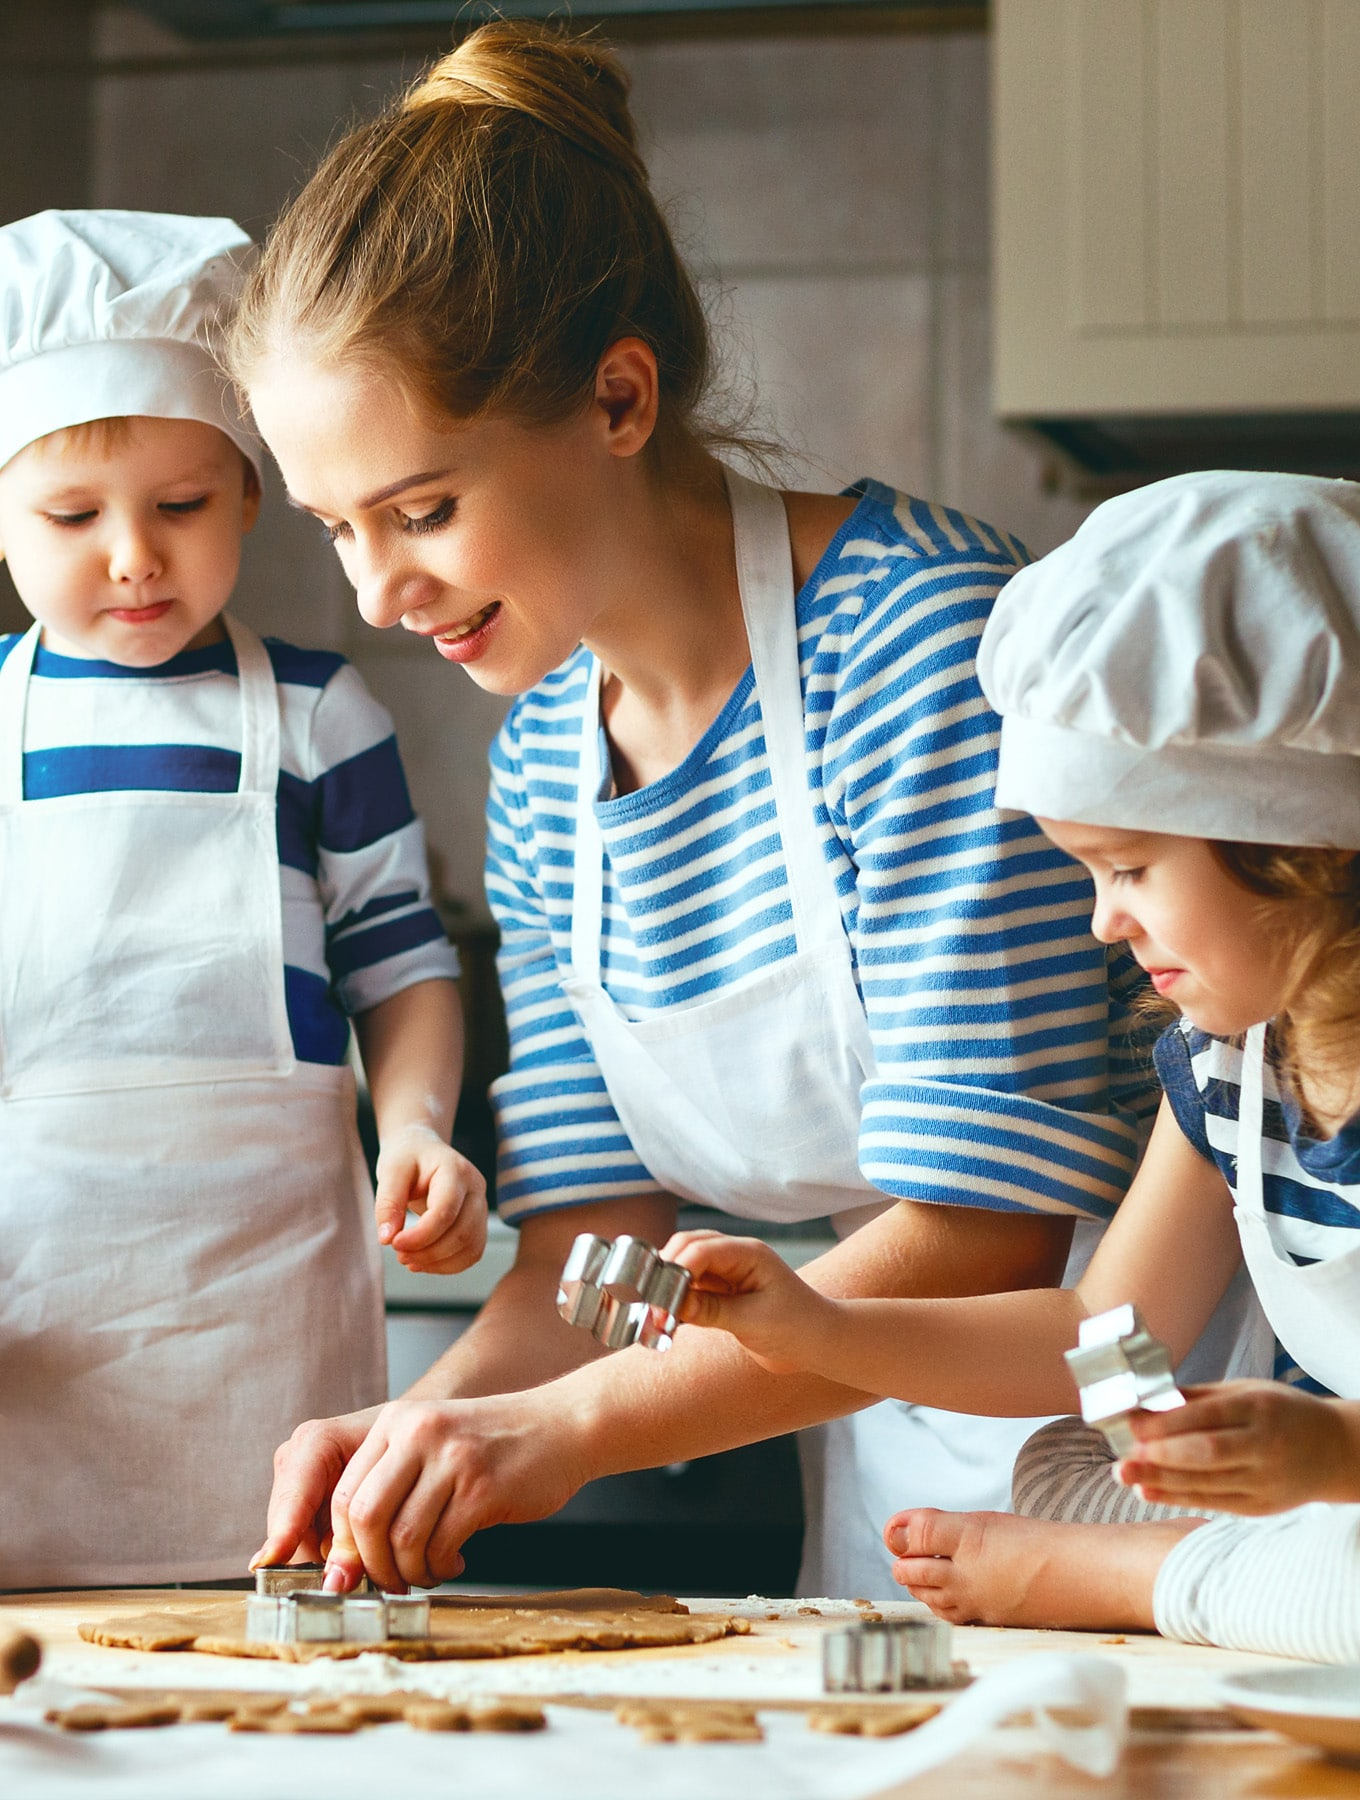 Youtube Cooking: The Benefits Of Cooking With Kids Outweigh The Challenges